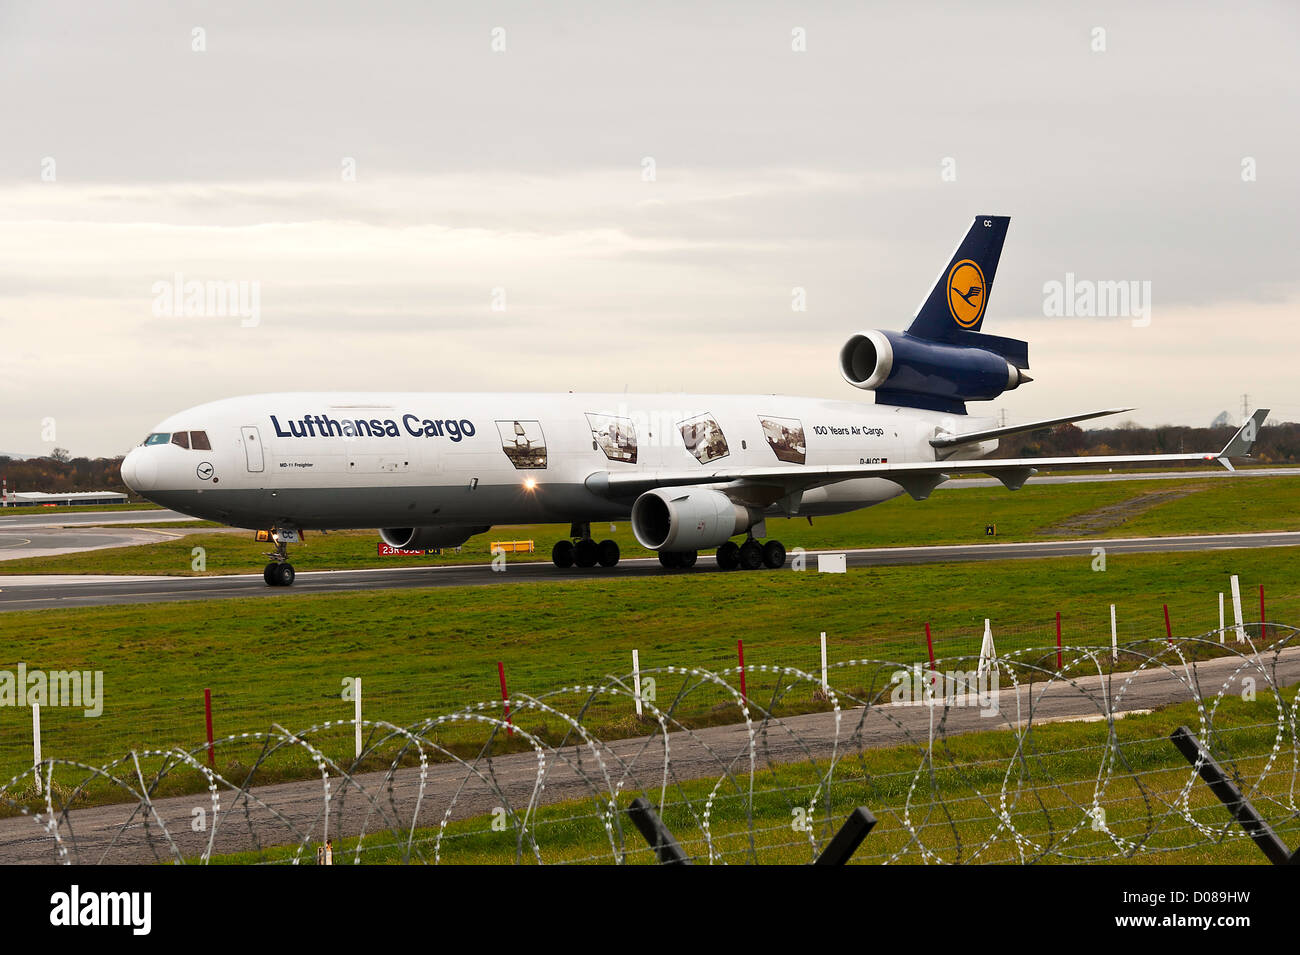 Lufthansa Cargo Airlines Mc Donnell Douglas MD-11F Freighter Airliner D-ALCC Taxiing at Manchester Airport England Stock Photo